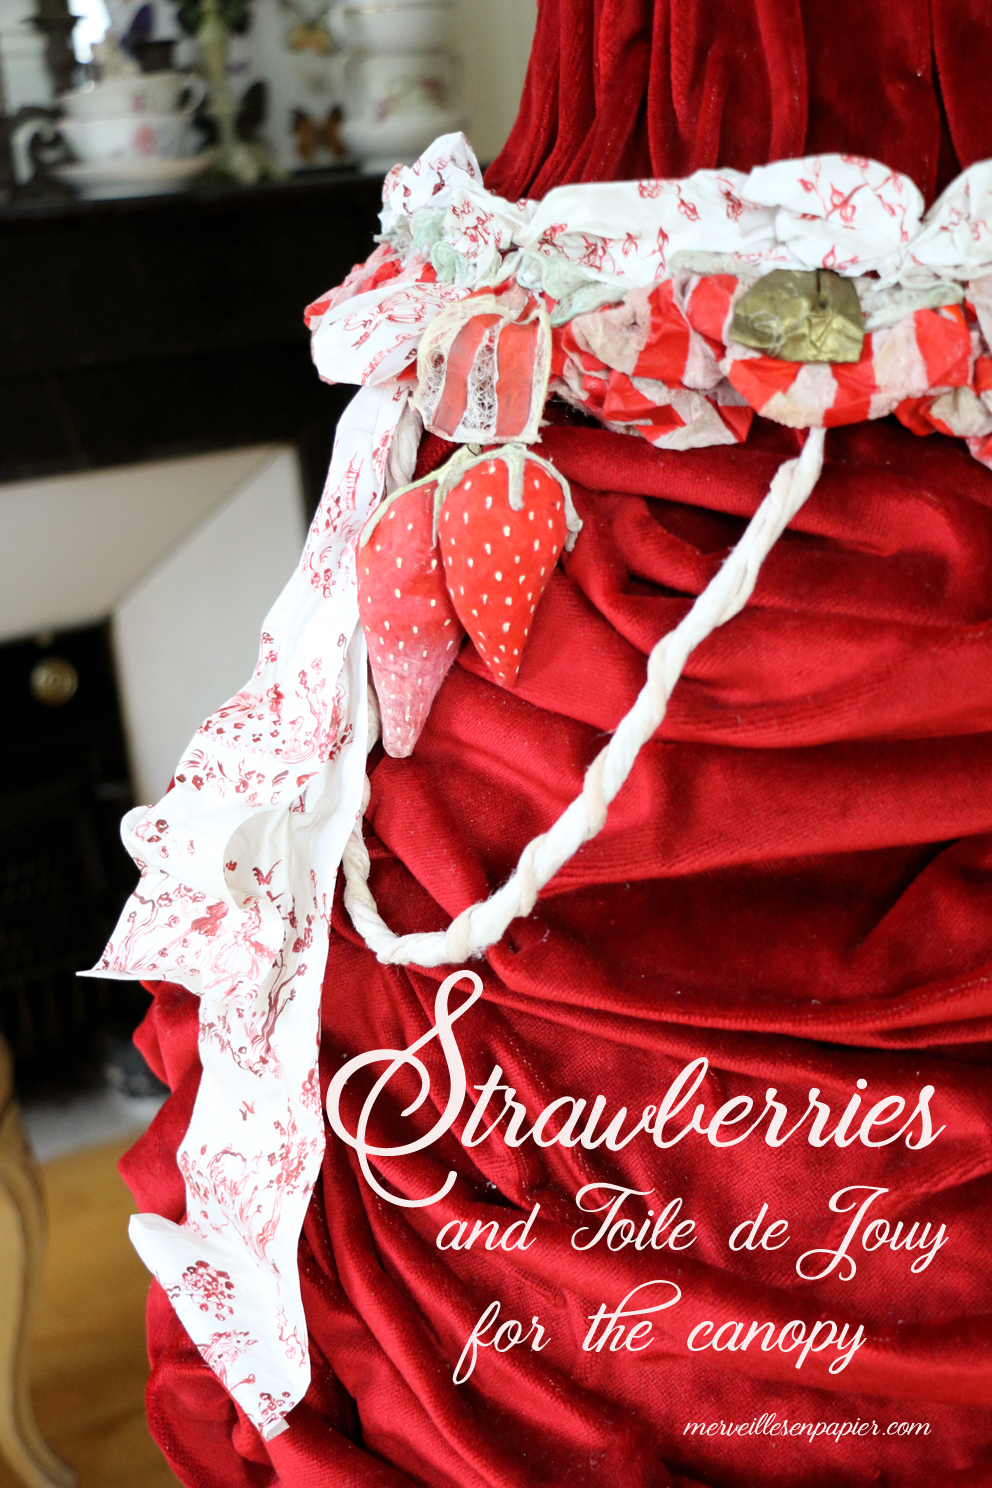 Strawberries and toile de jouy paper